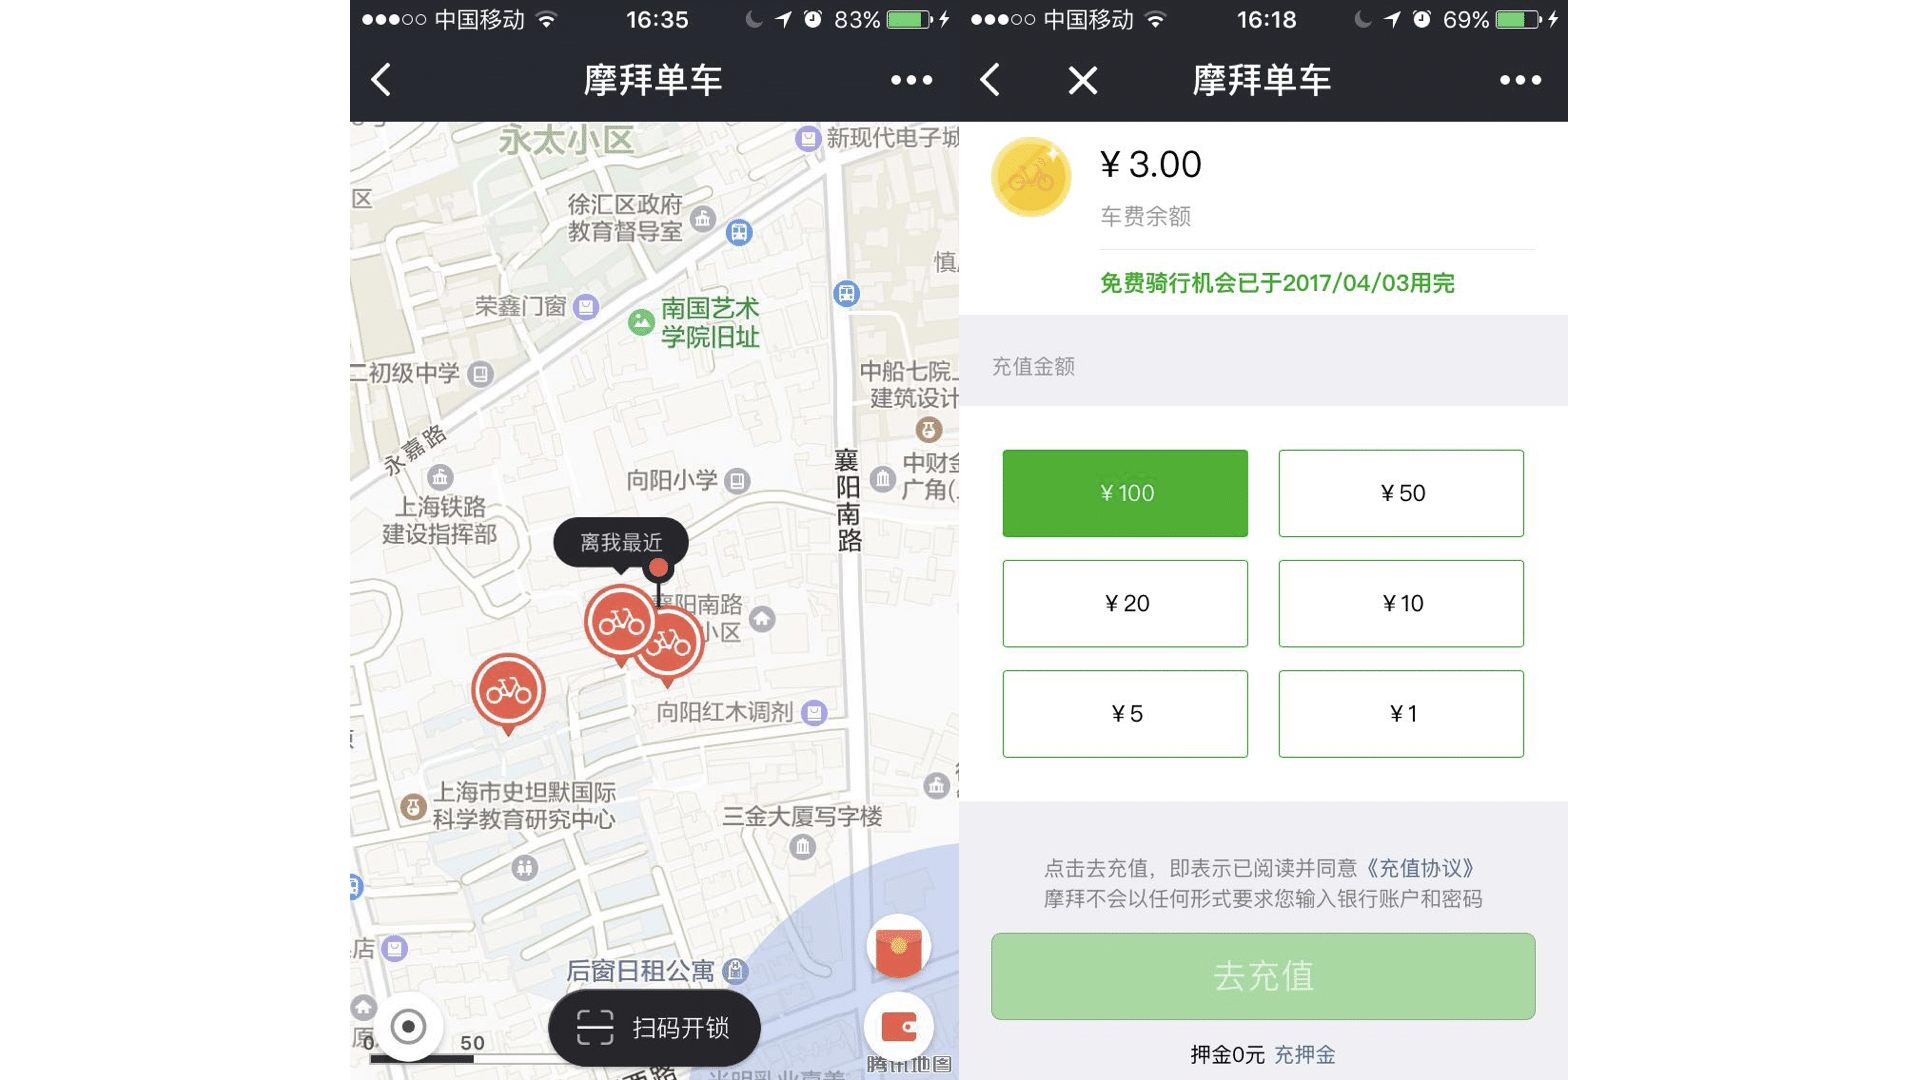 Wechat mini program - Mobike